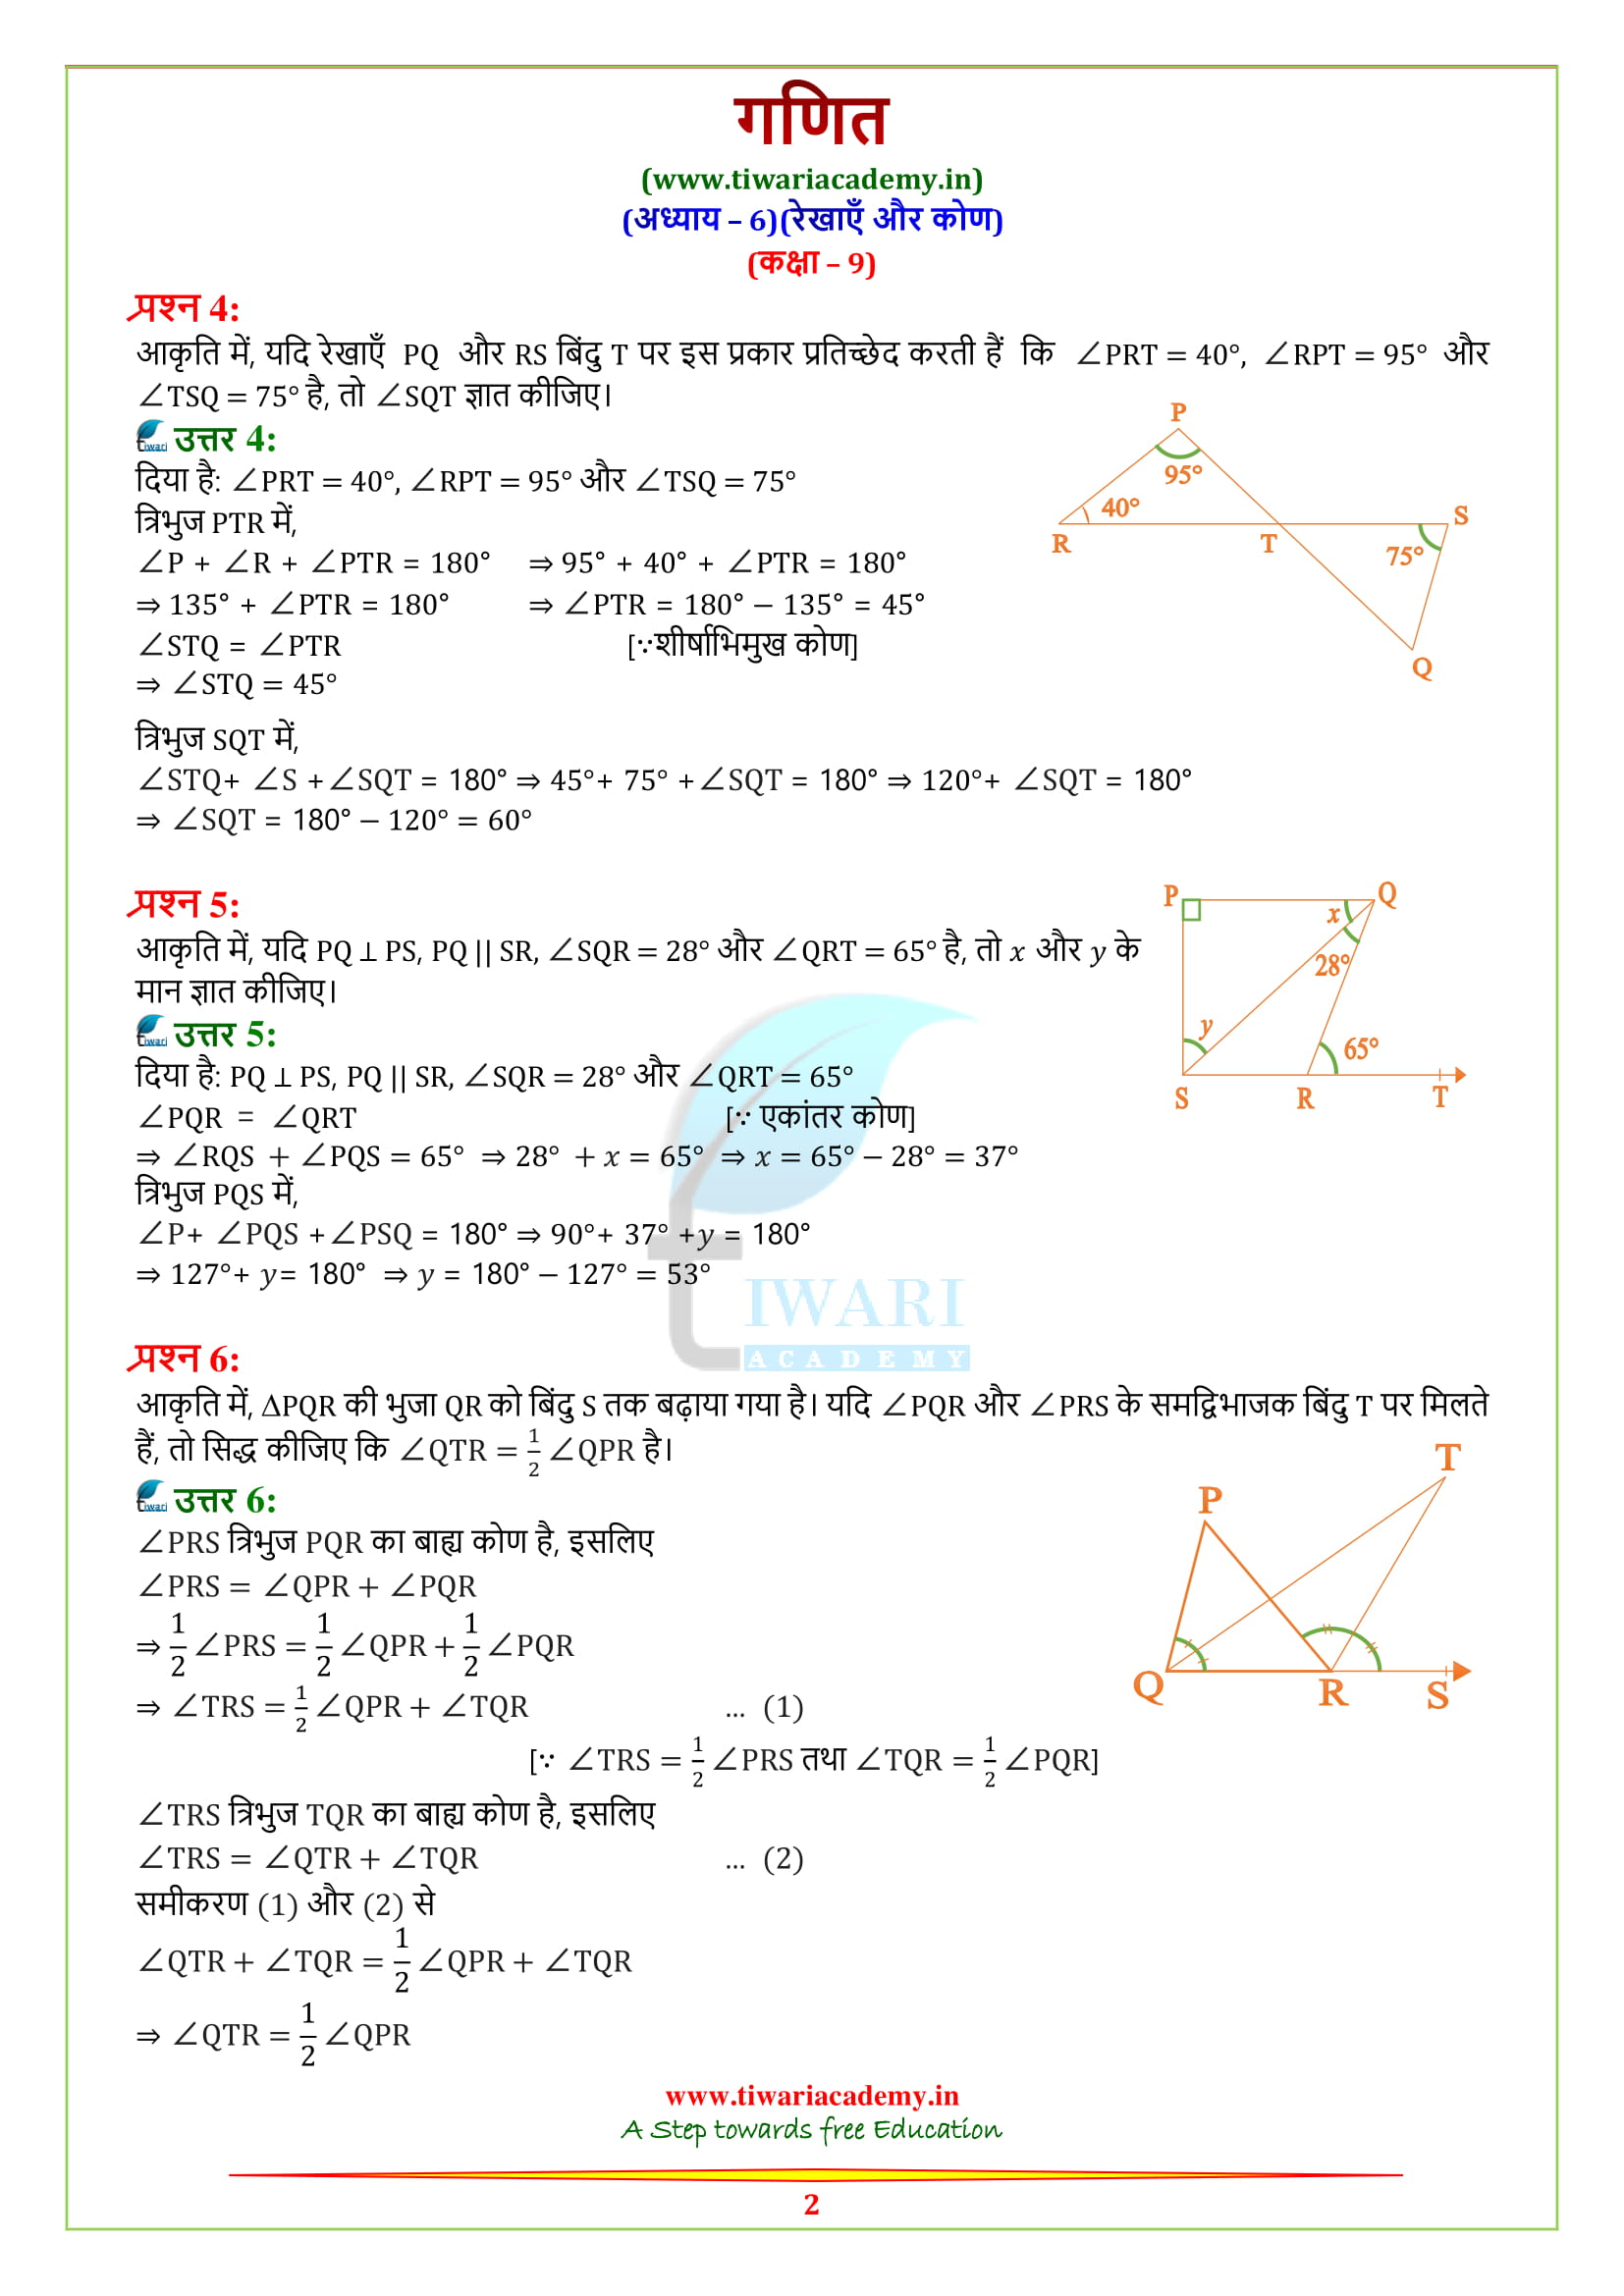 9 Maths Chapter 6 Exercise 6.3 solutions in hindi medium